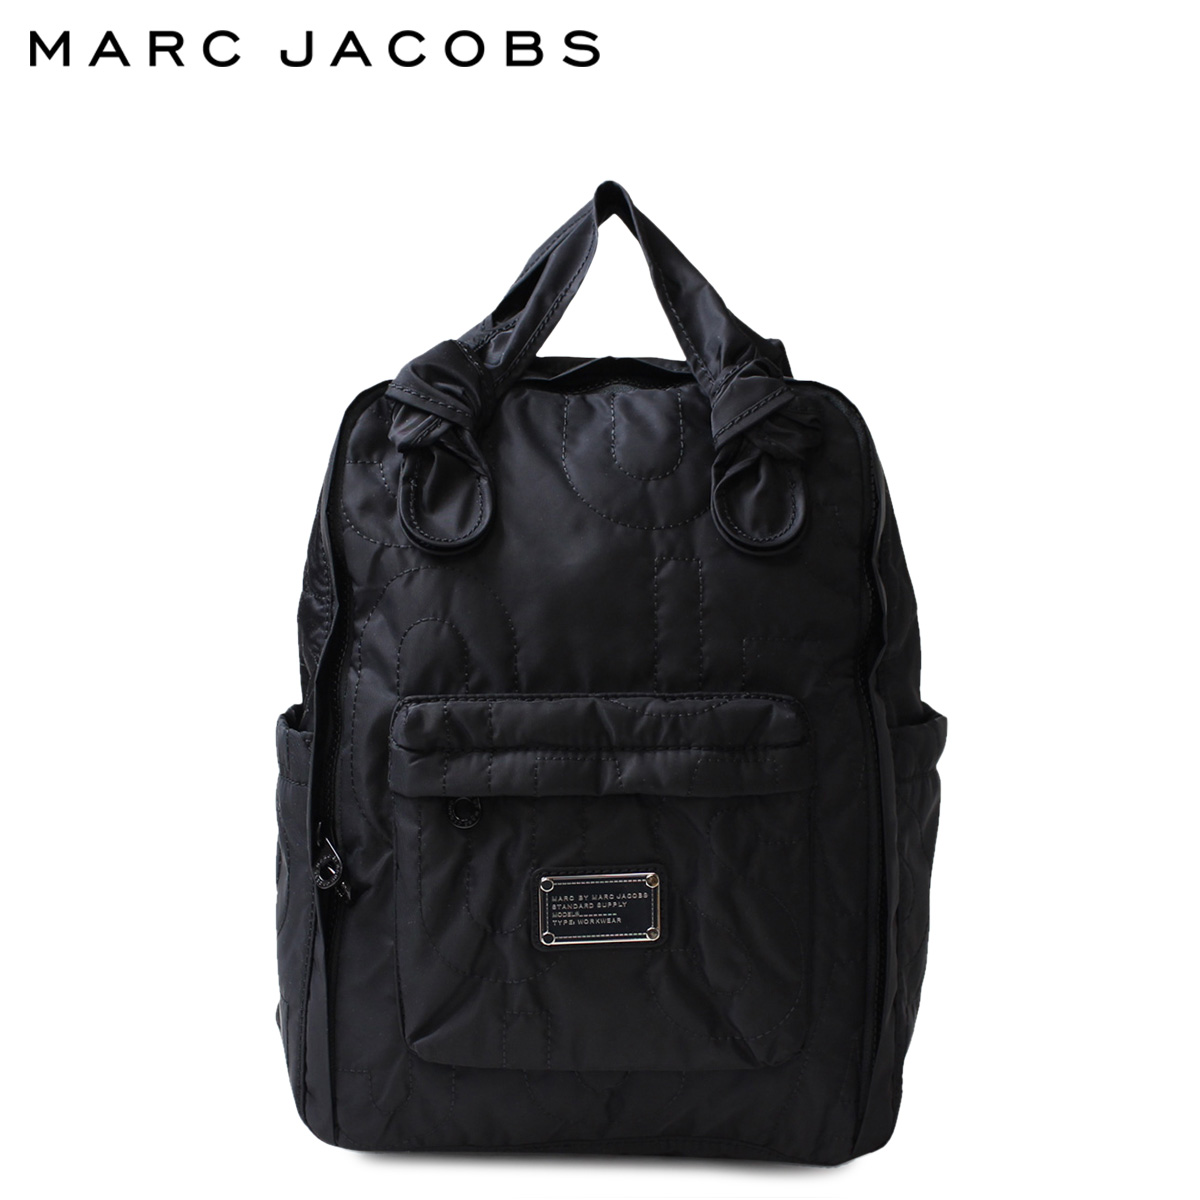 951258ba132c  arrival ♪ long-awaited the latest item of mark by mark Jacobs  ・Extreme  popularity Marc By Marc Jacobs Shinnyu load! ・The backpack of the 2WAY type  that ...